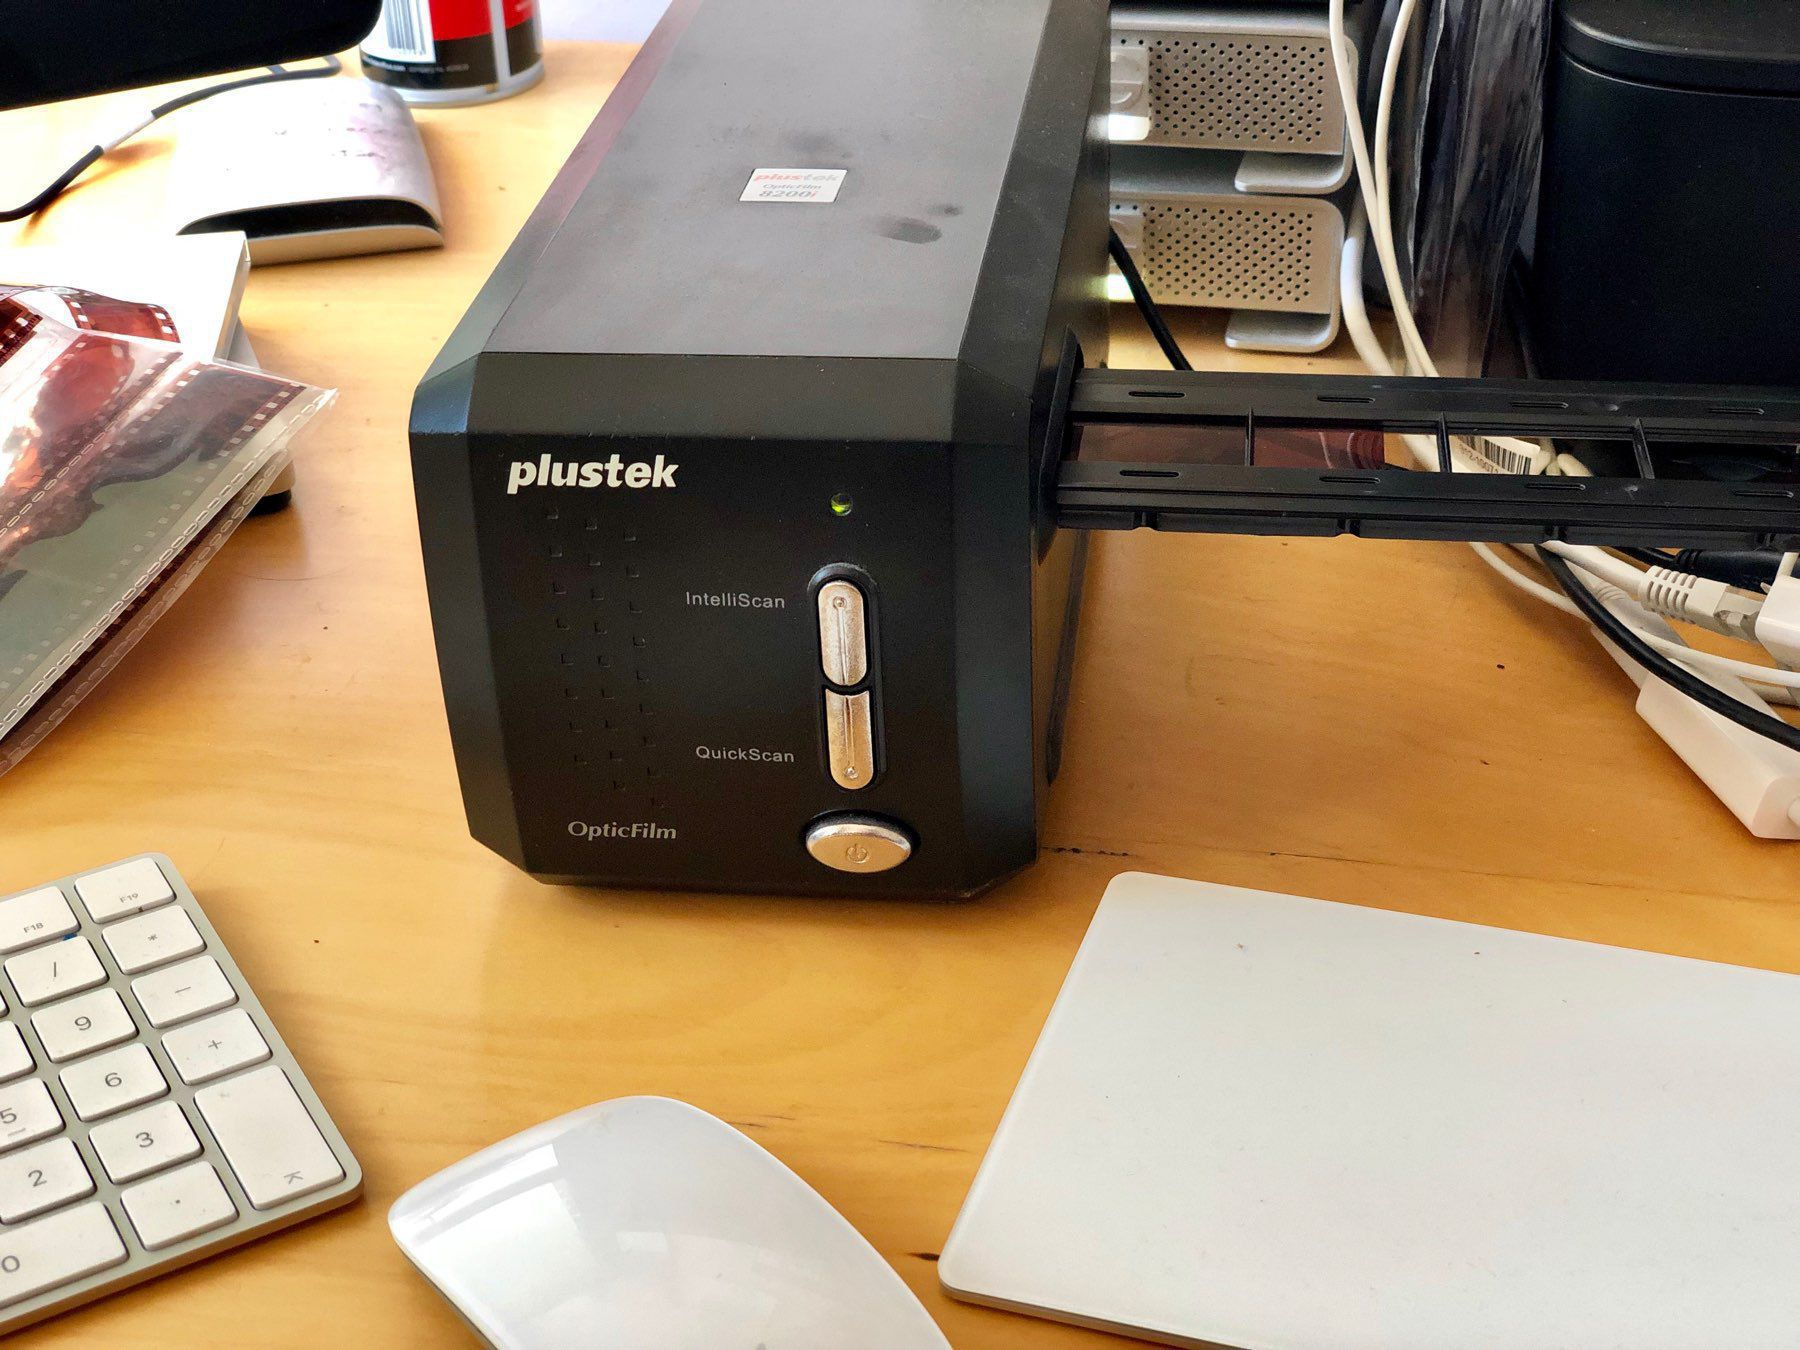 A Plustek OpticFilm scanner